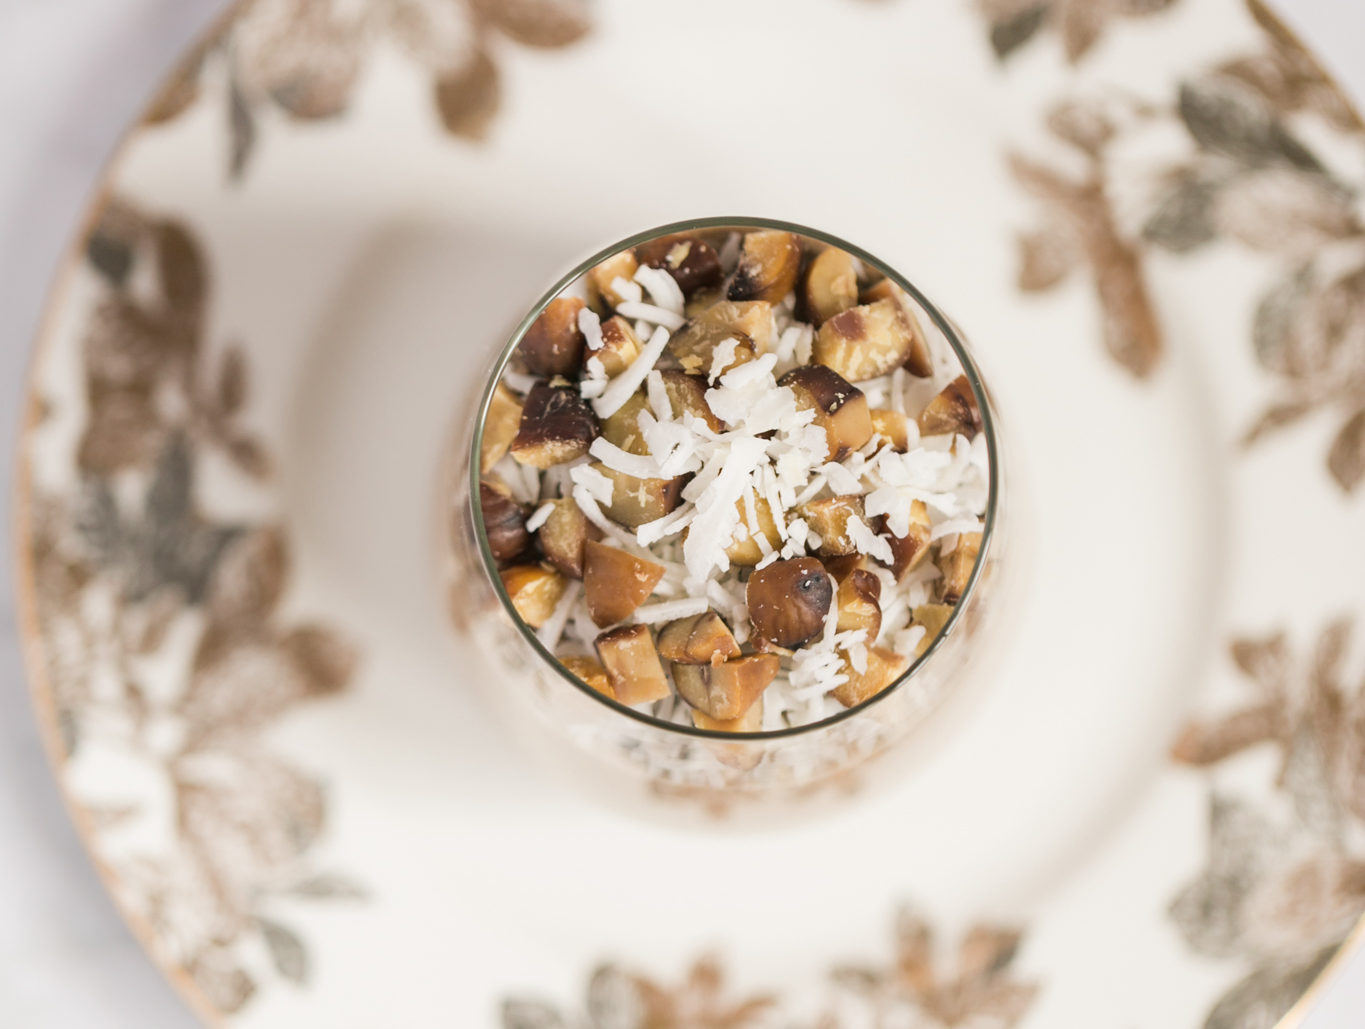 chestnut-holiday-chia-seed-pudding-jennie-miremadi-recipe-valorie-darling-photography